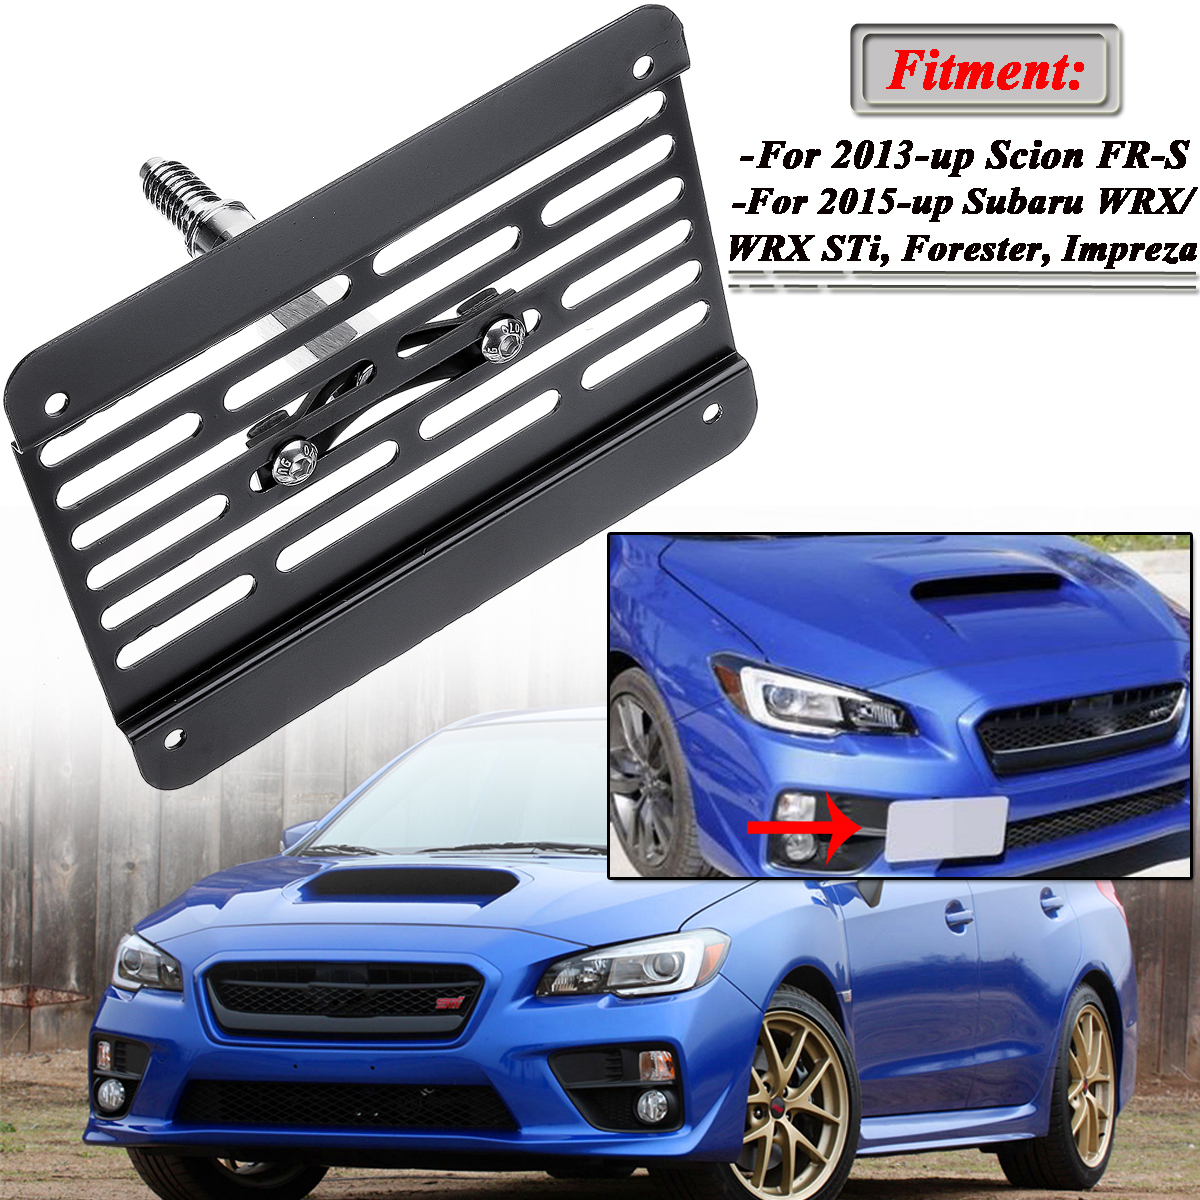 Car Bumper License  License Frame Plate Relocator Bracket Holder Mount Angle